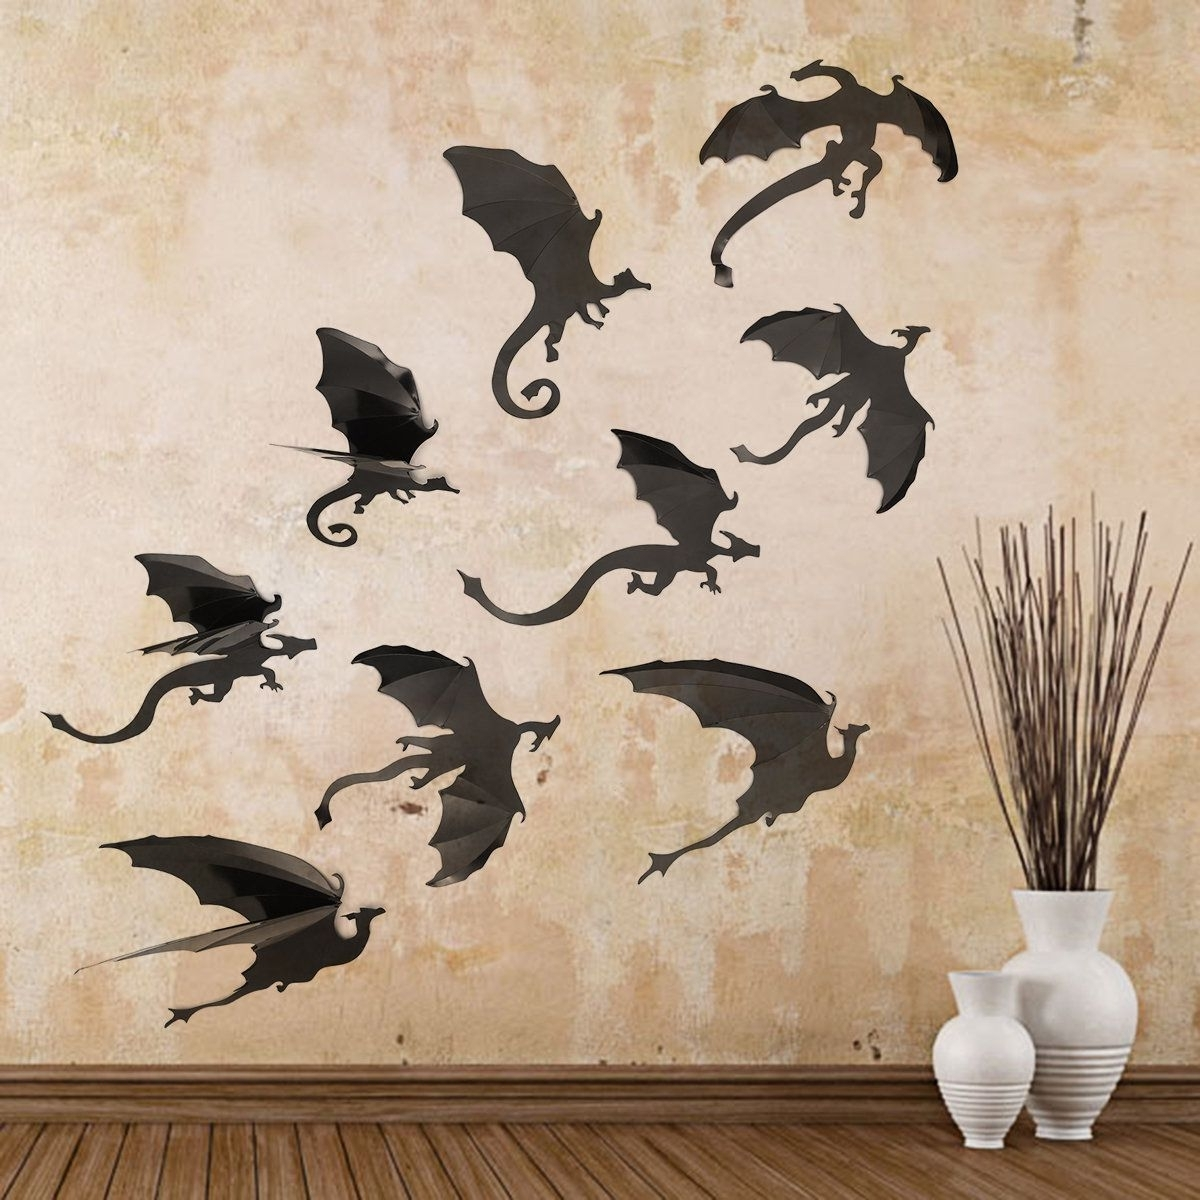 7Pcs/set Halloween Decoration Pvc Wall Stickers 3D Dragon Decorative Pertaining To Best And Newest Dragon Wall Art (View 9 of 15)